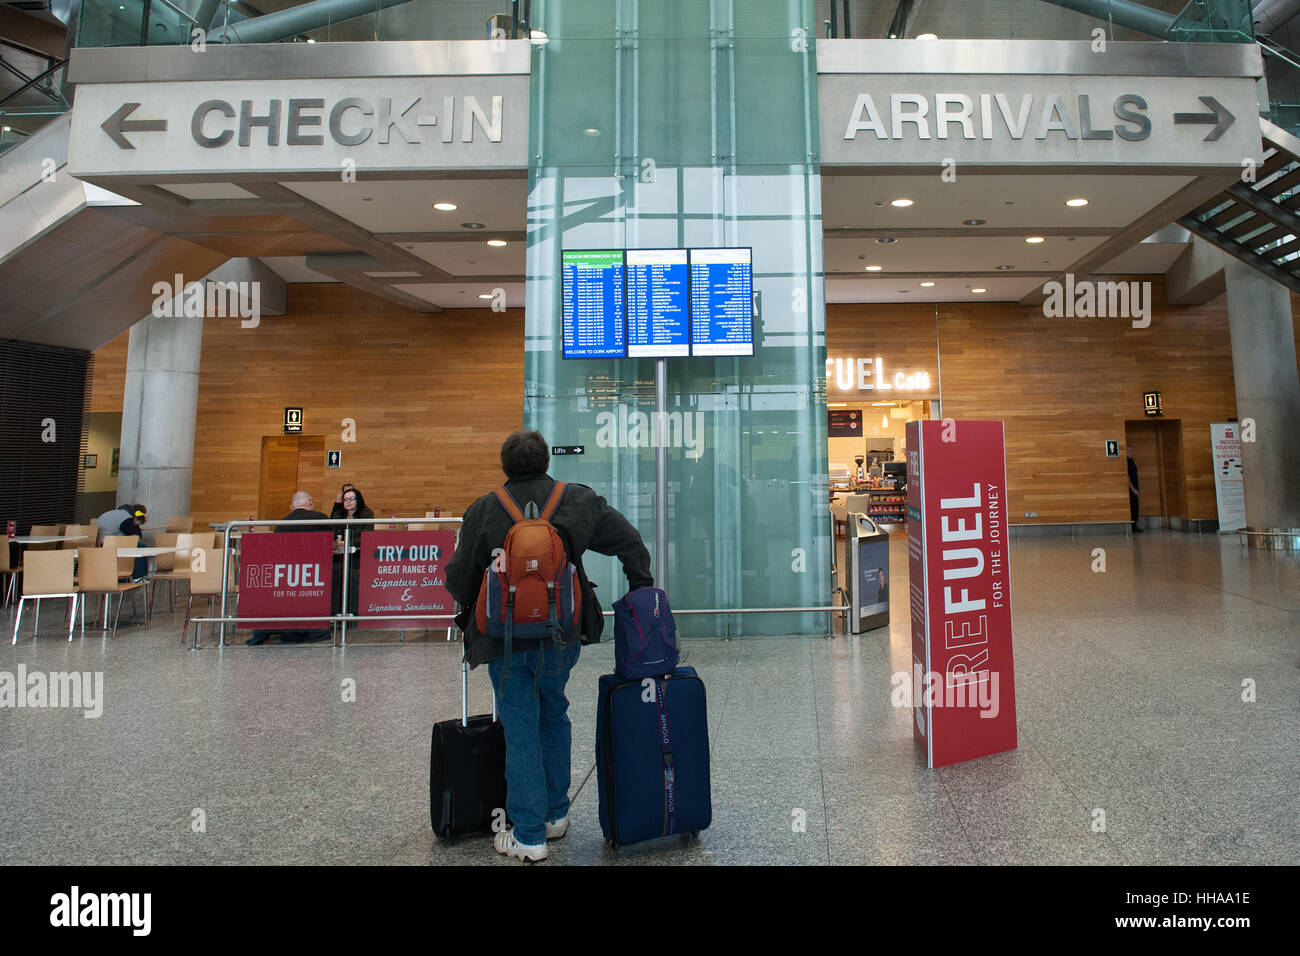 A passenger with luggage checks out the board at the departures terminal at Cork International Airport, Cork, Ireland - Stock Image